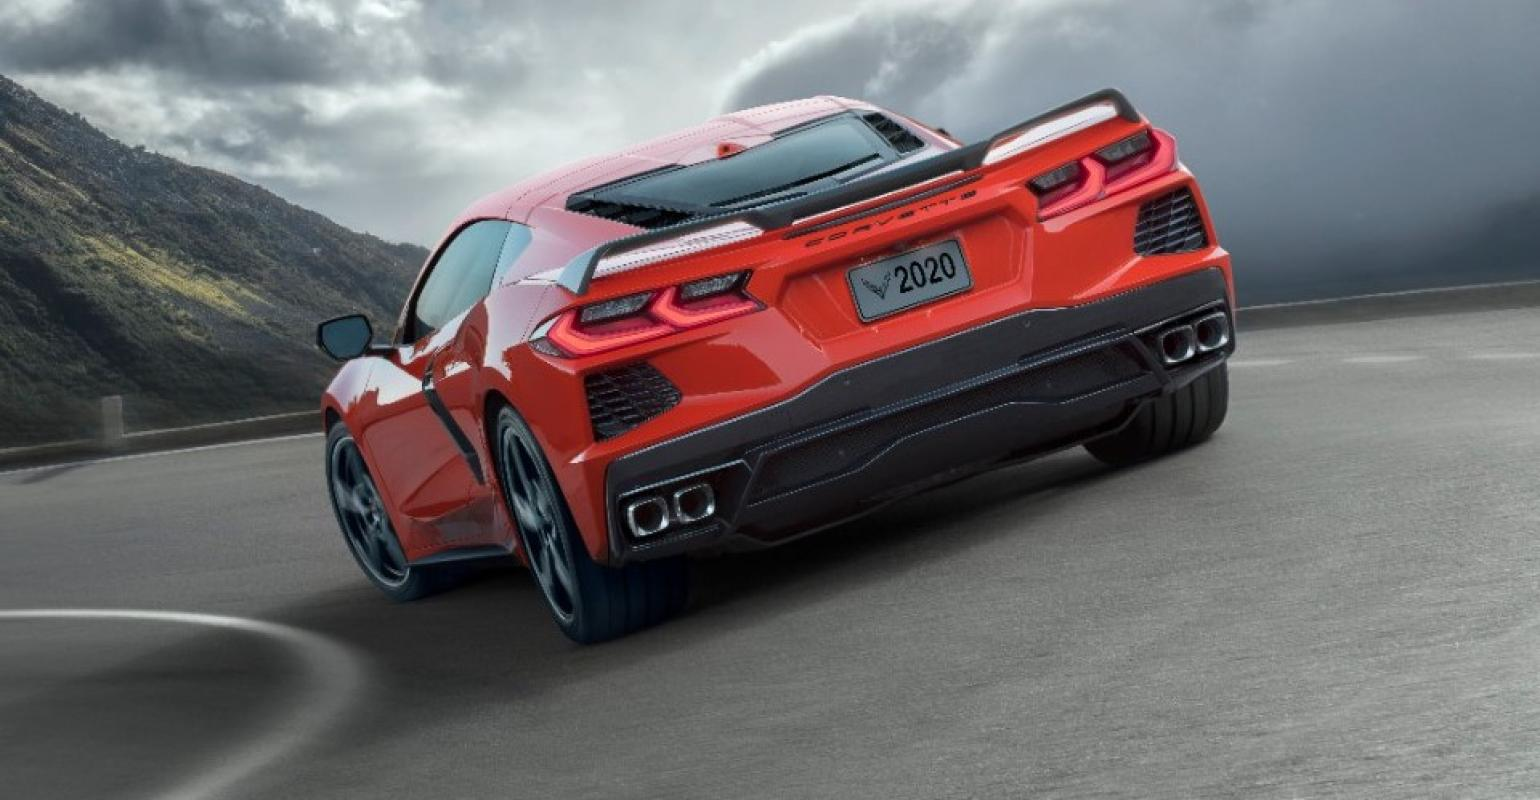 Watch The 2020 Chevy Corvette S Trick Gps Front Lift Tech In Action